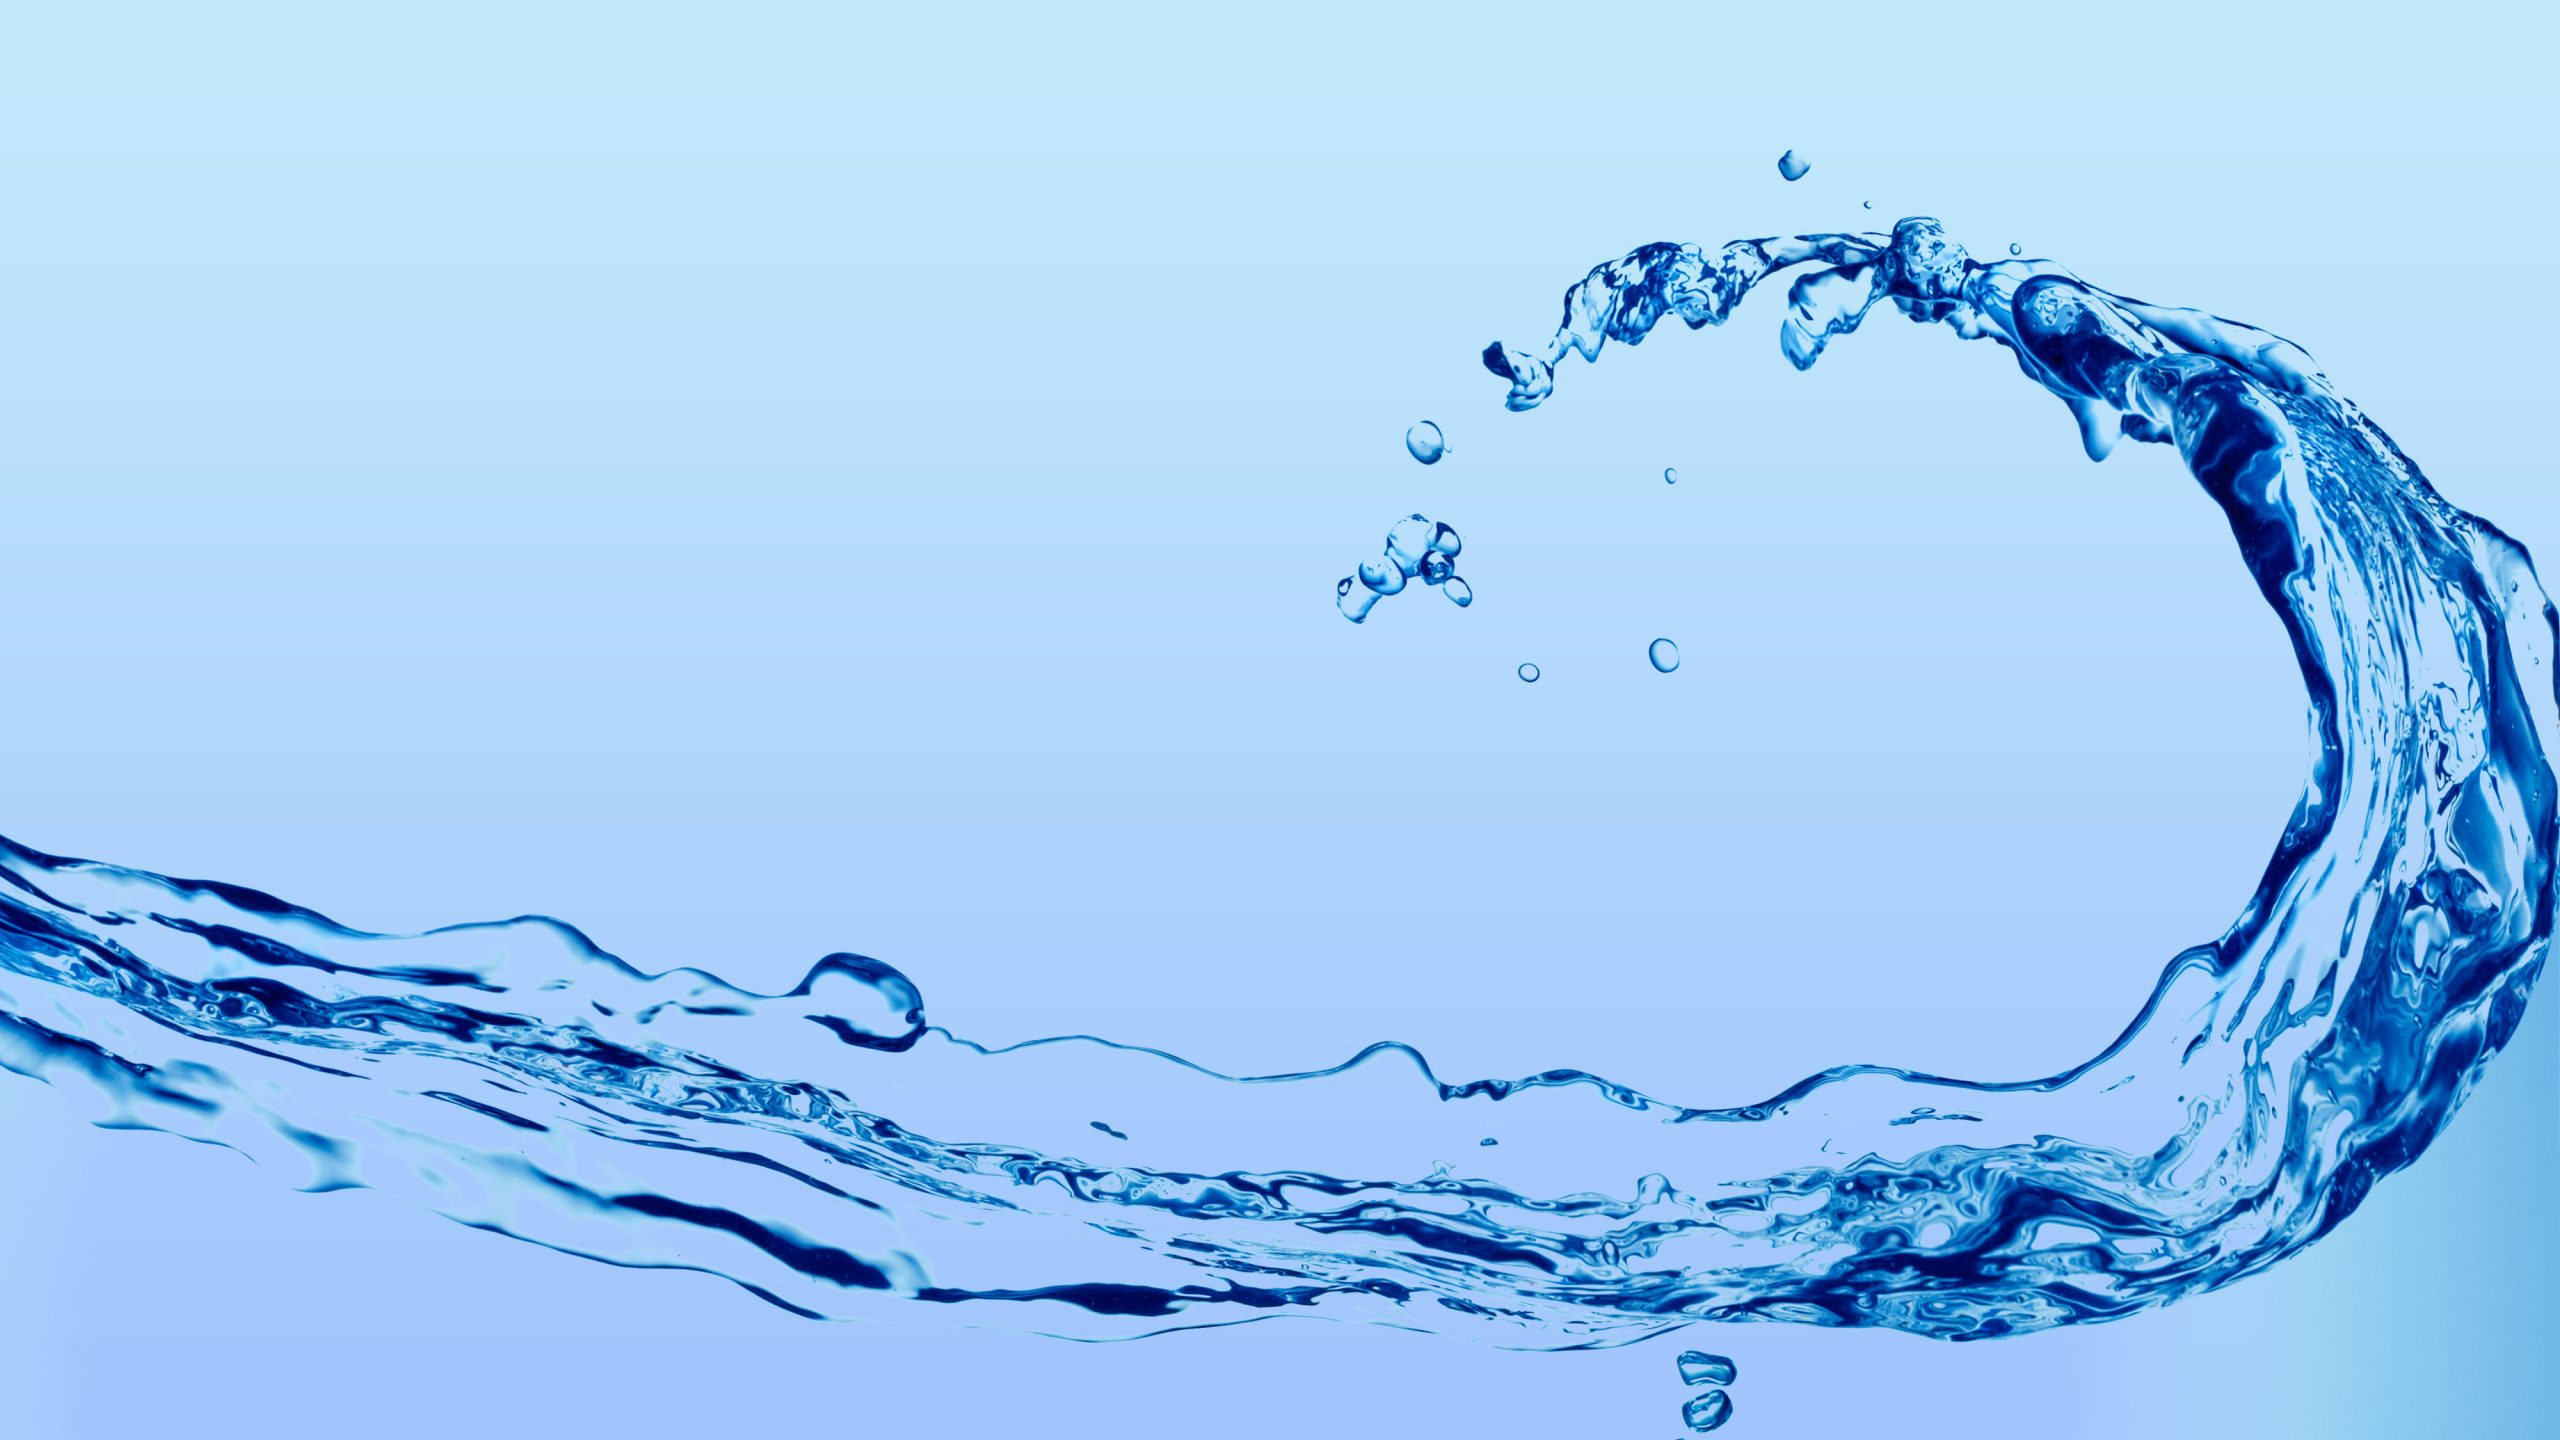 water-wave-background